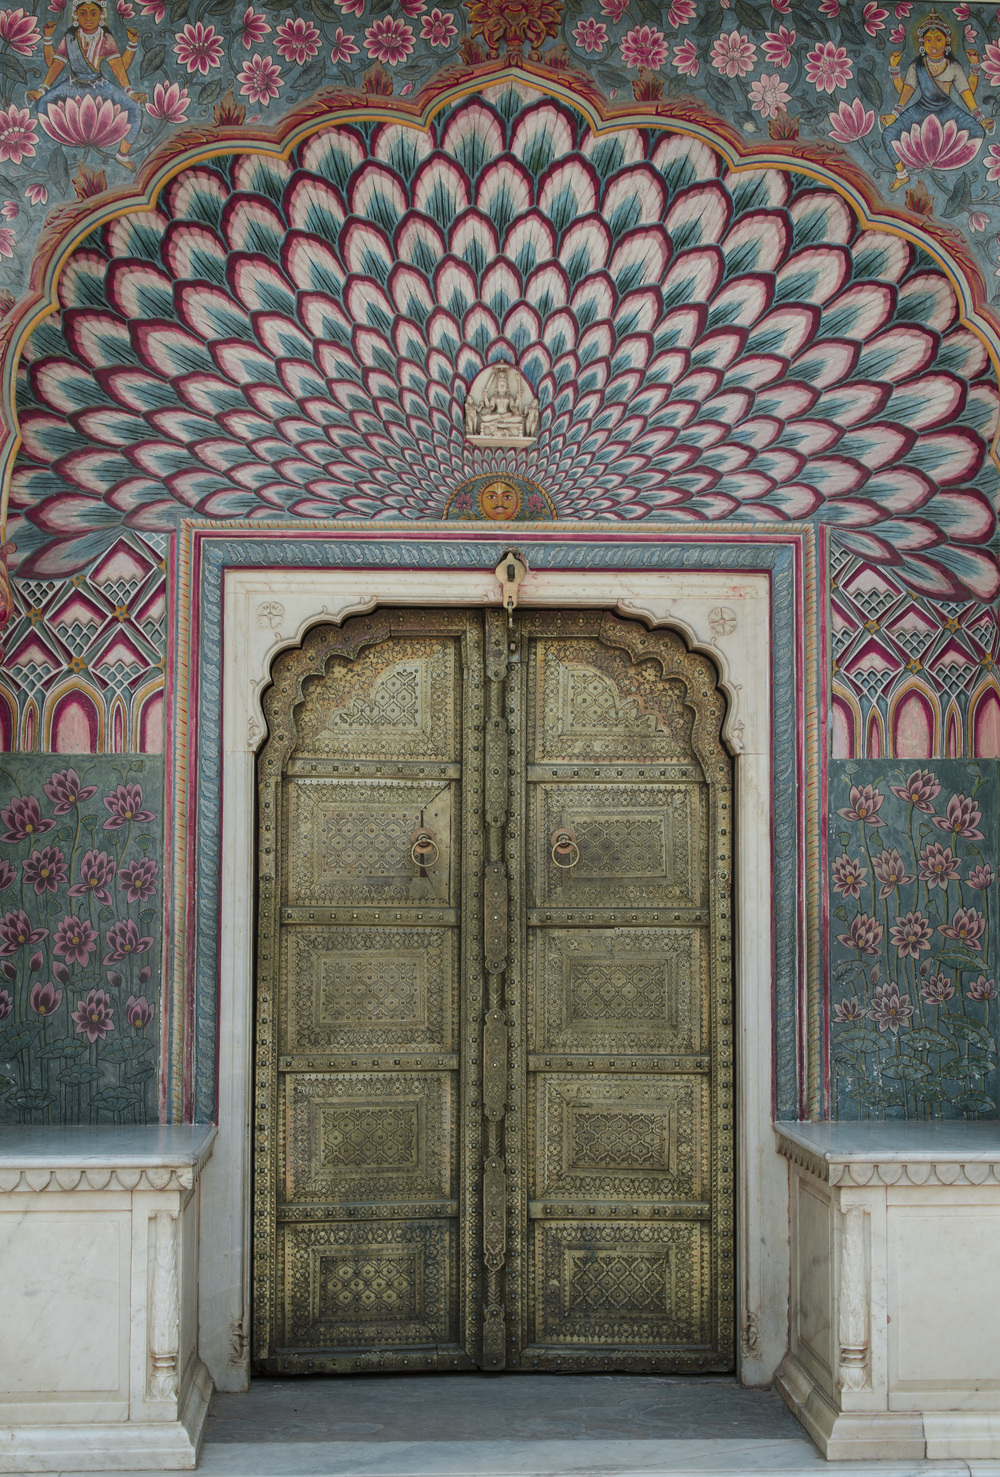 One of the beautifully painted and designed doors in the City Palace